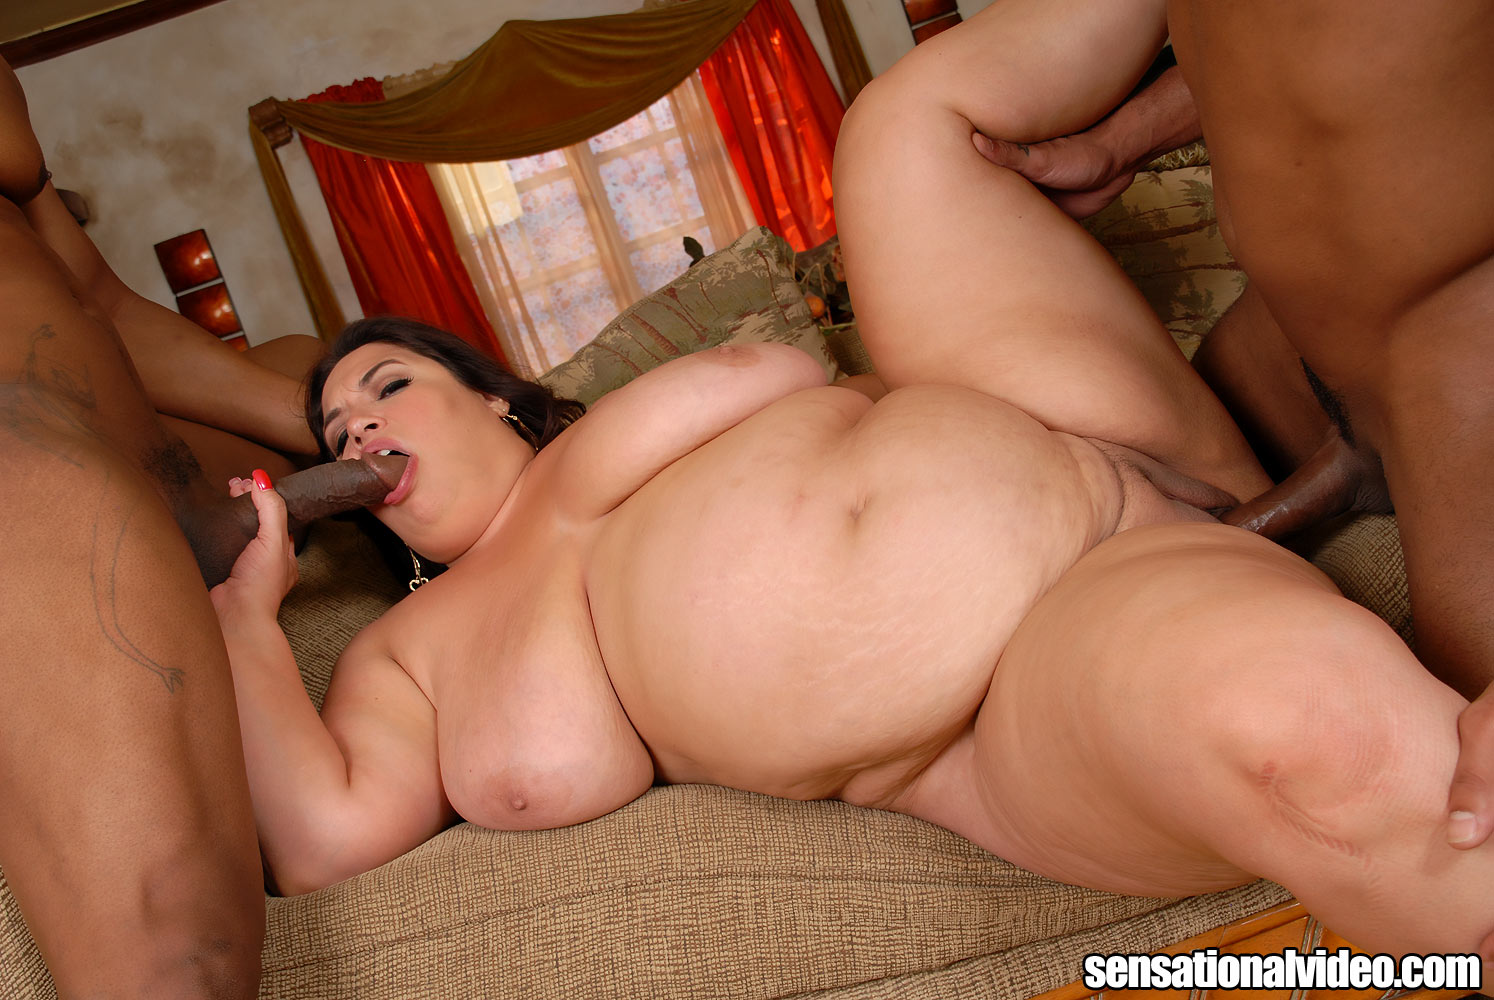 bbw sex you porn № 53032